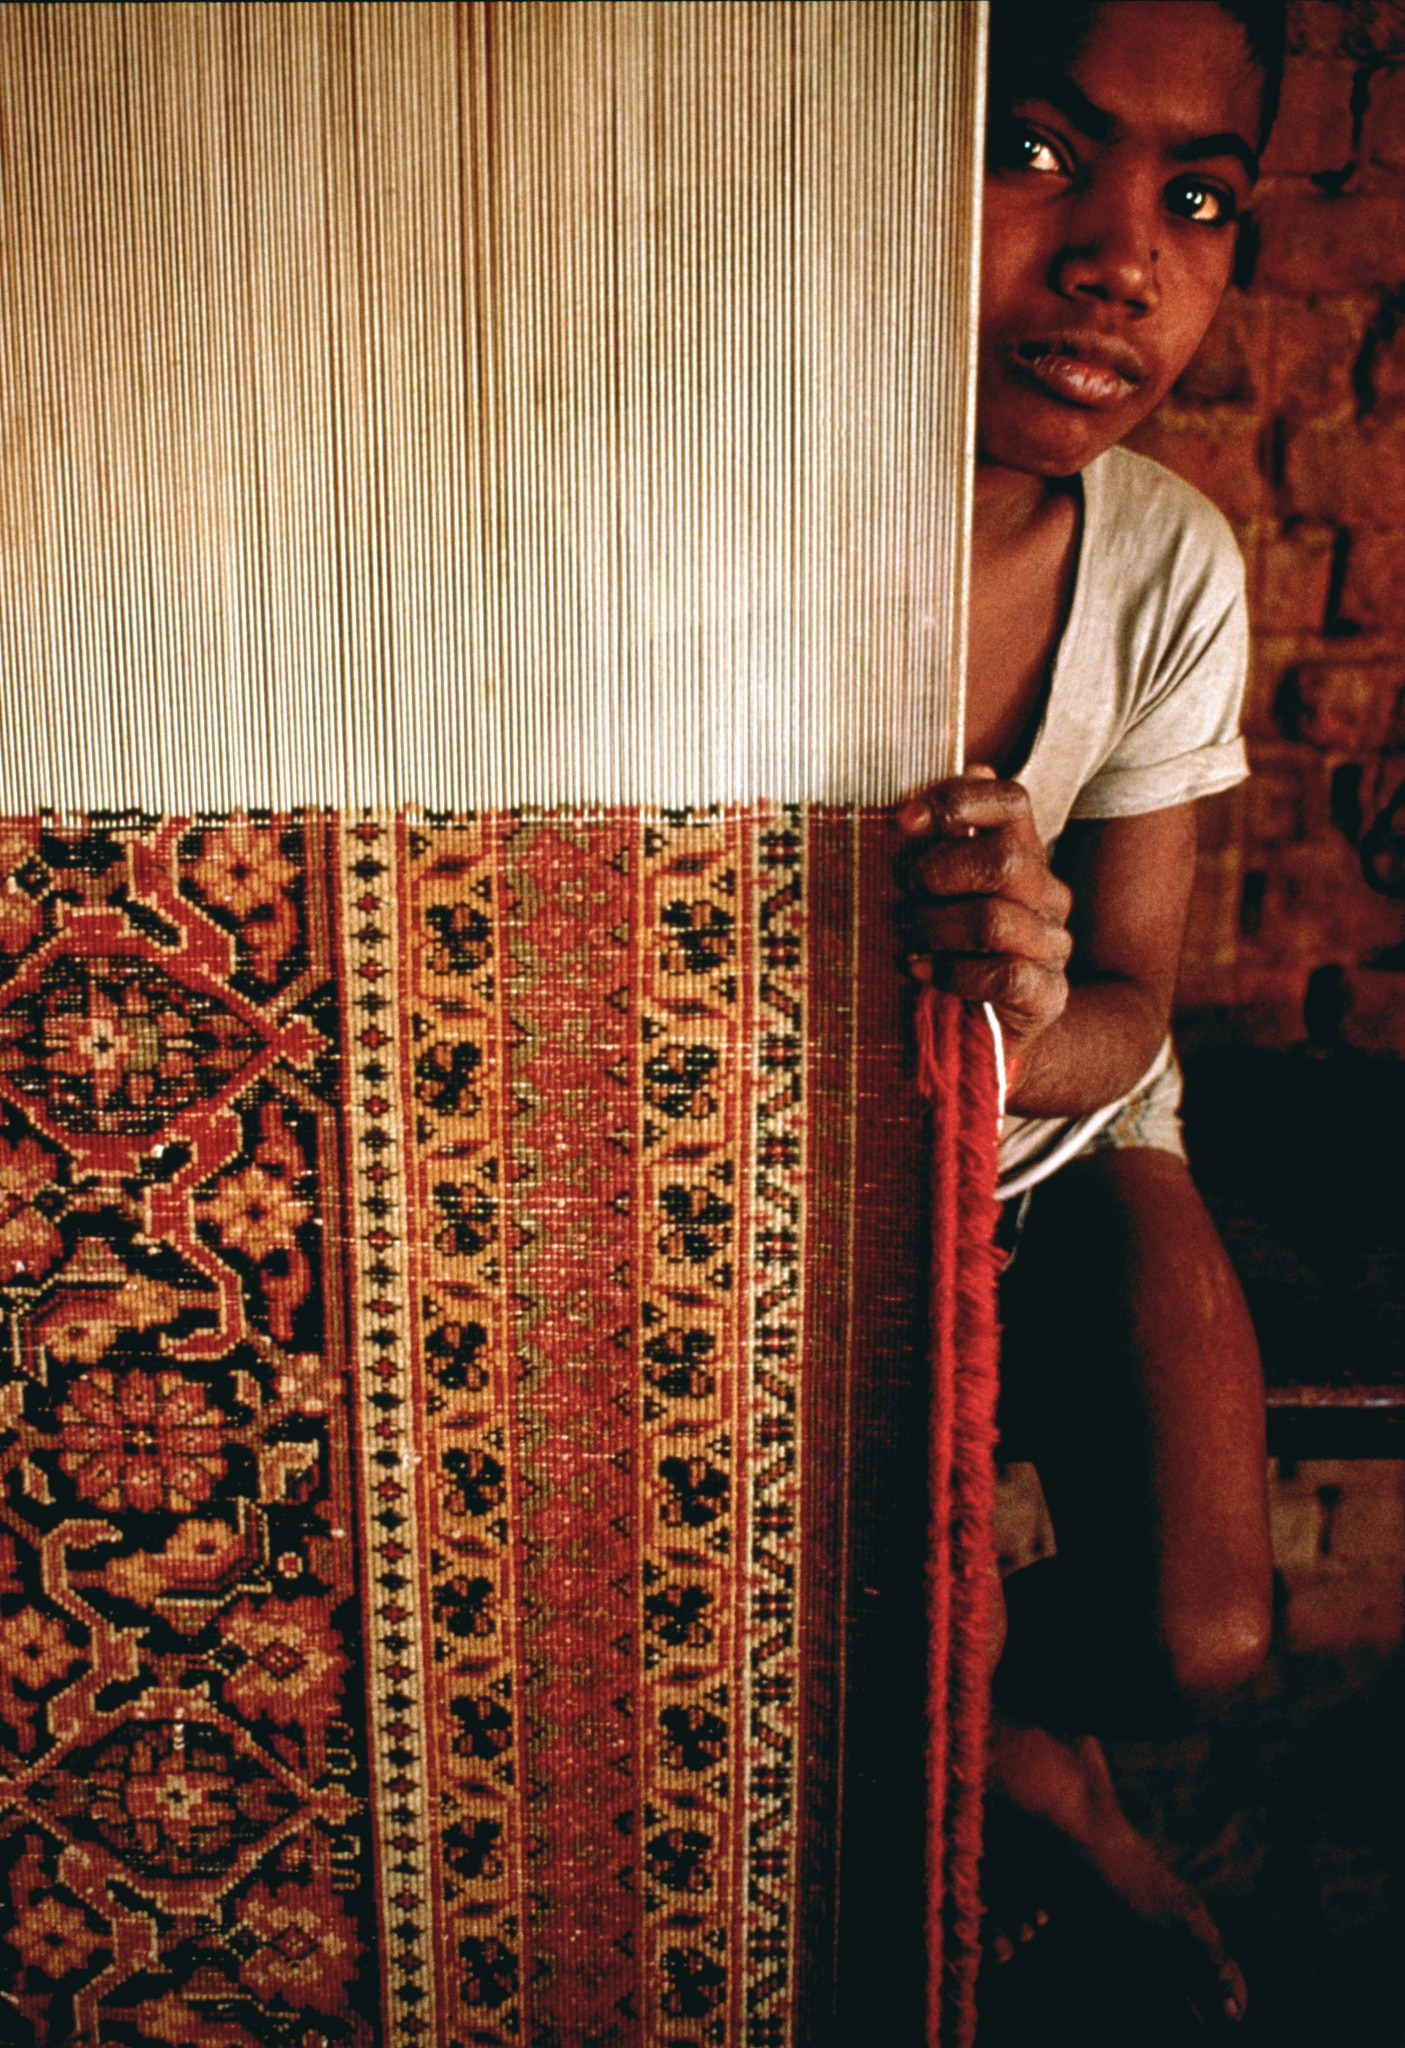 Child peering out from behind rug on loom (© Tom Stoddart/Getty Images)